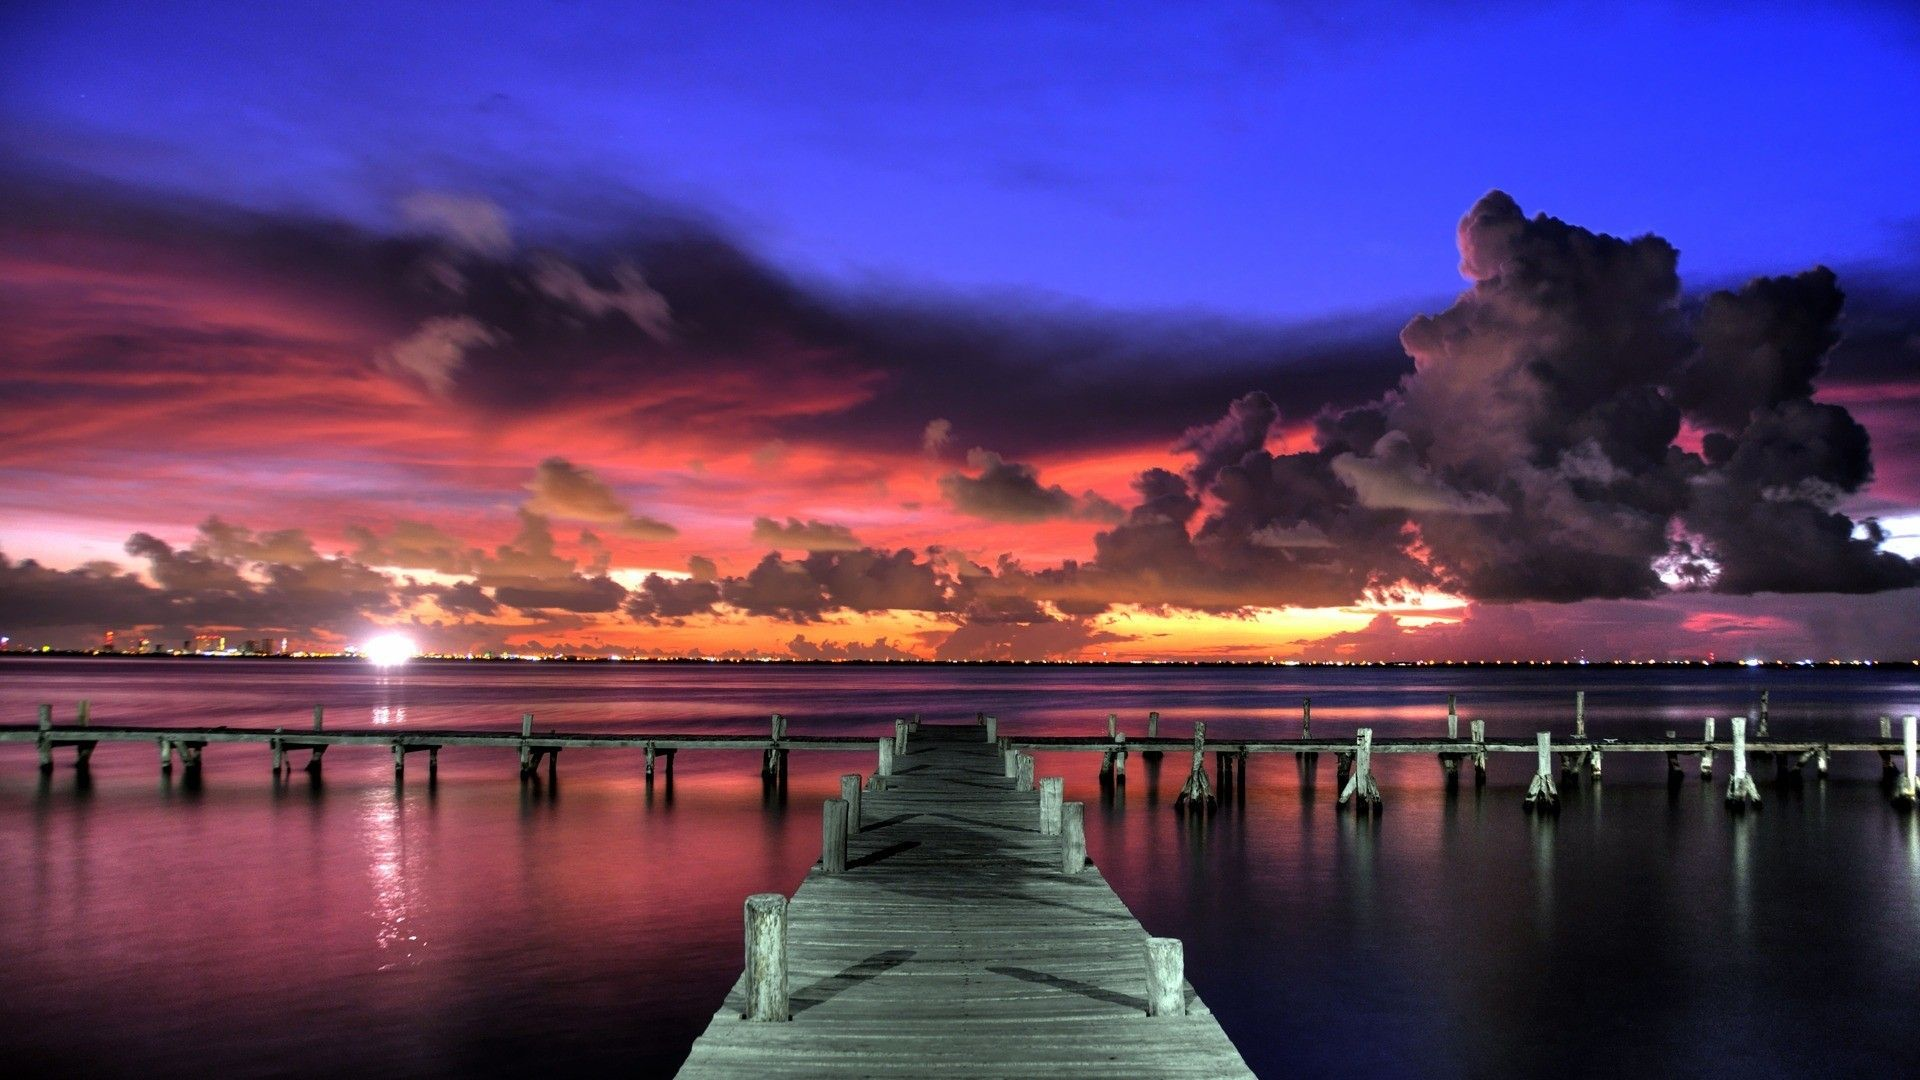 Download Wallpaper 1920x1080 Pier Sunset Sky View Full Hd 1080p Hd Background Spectacular Images Beautiful Views Travel Wallpaper